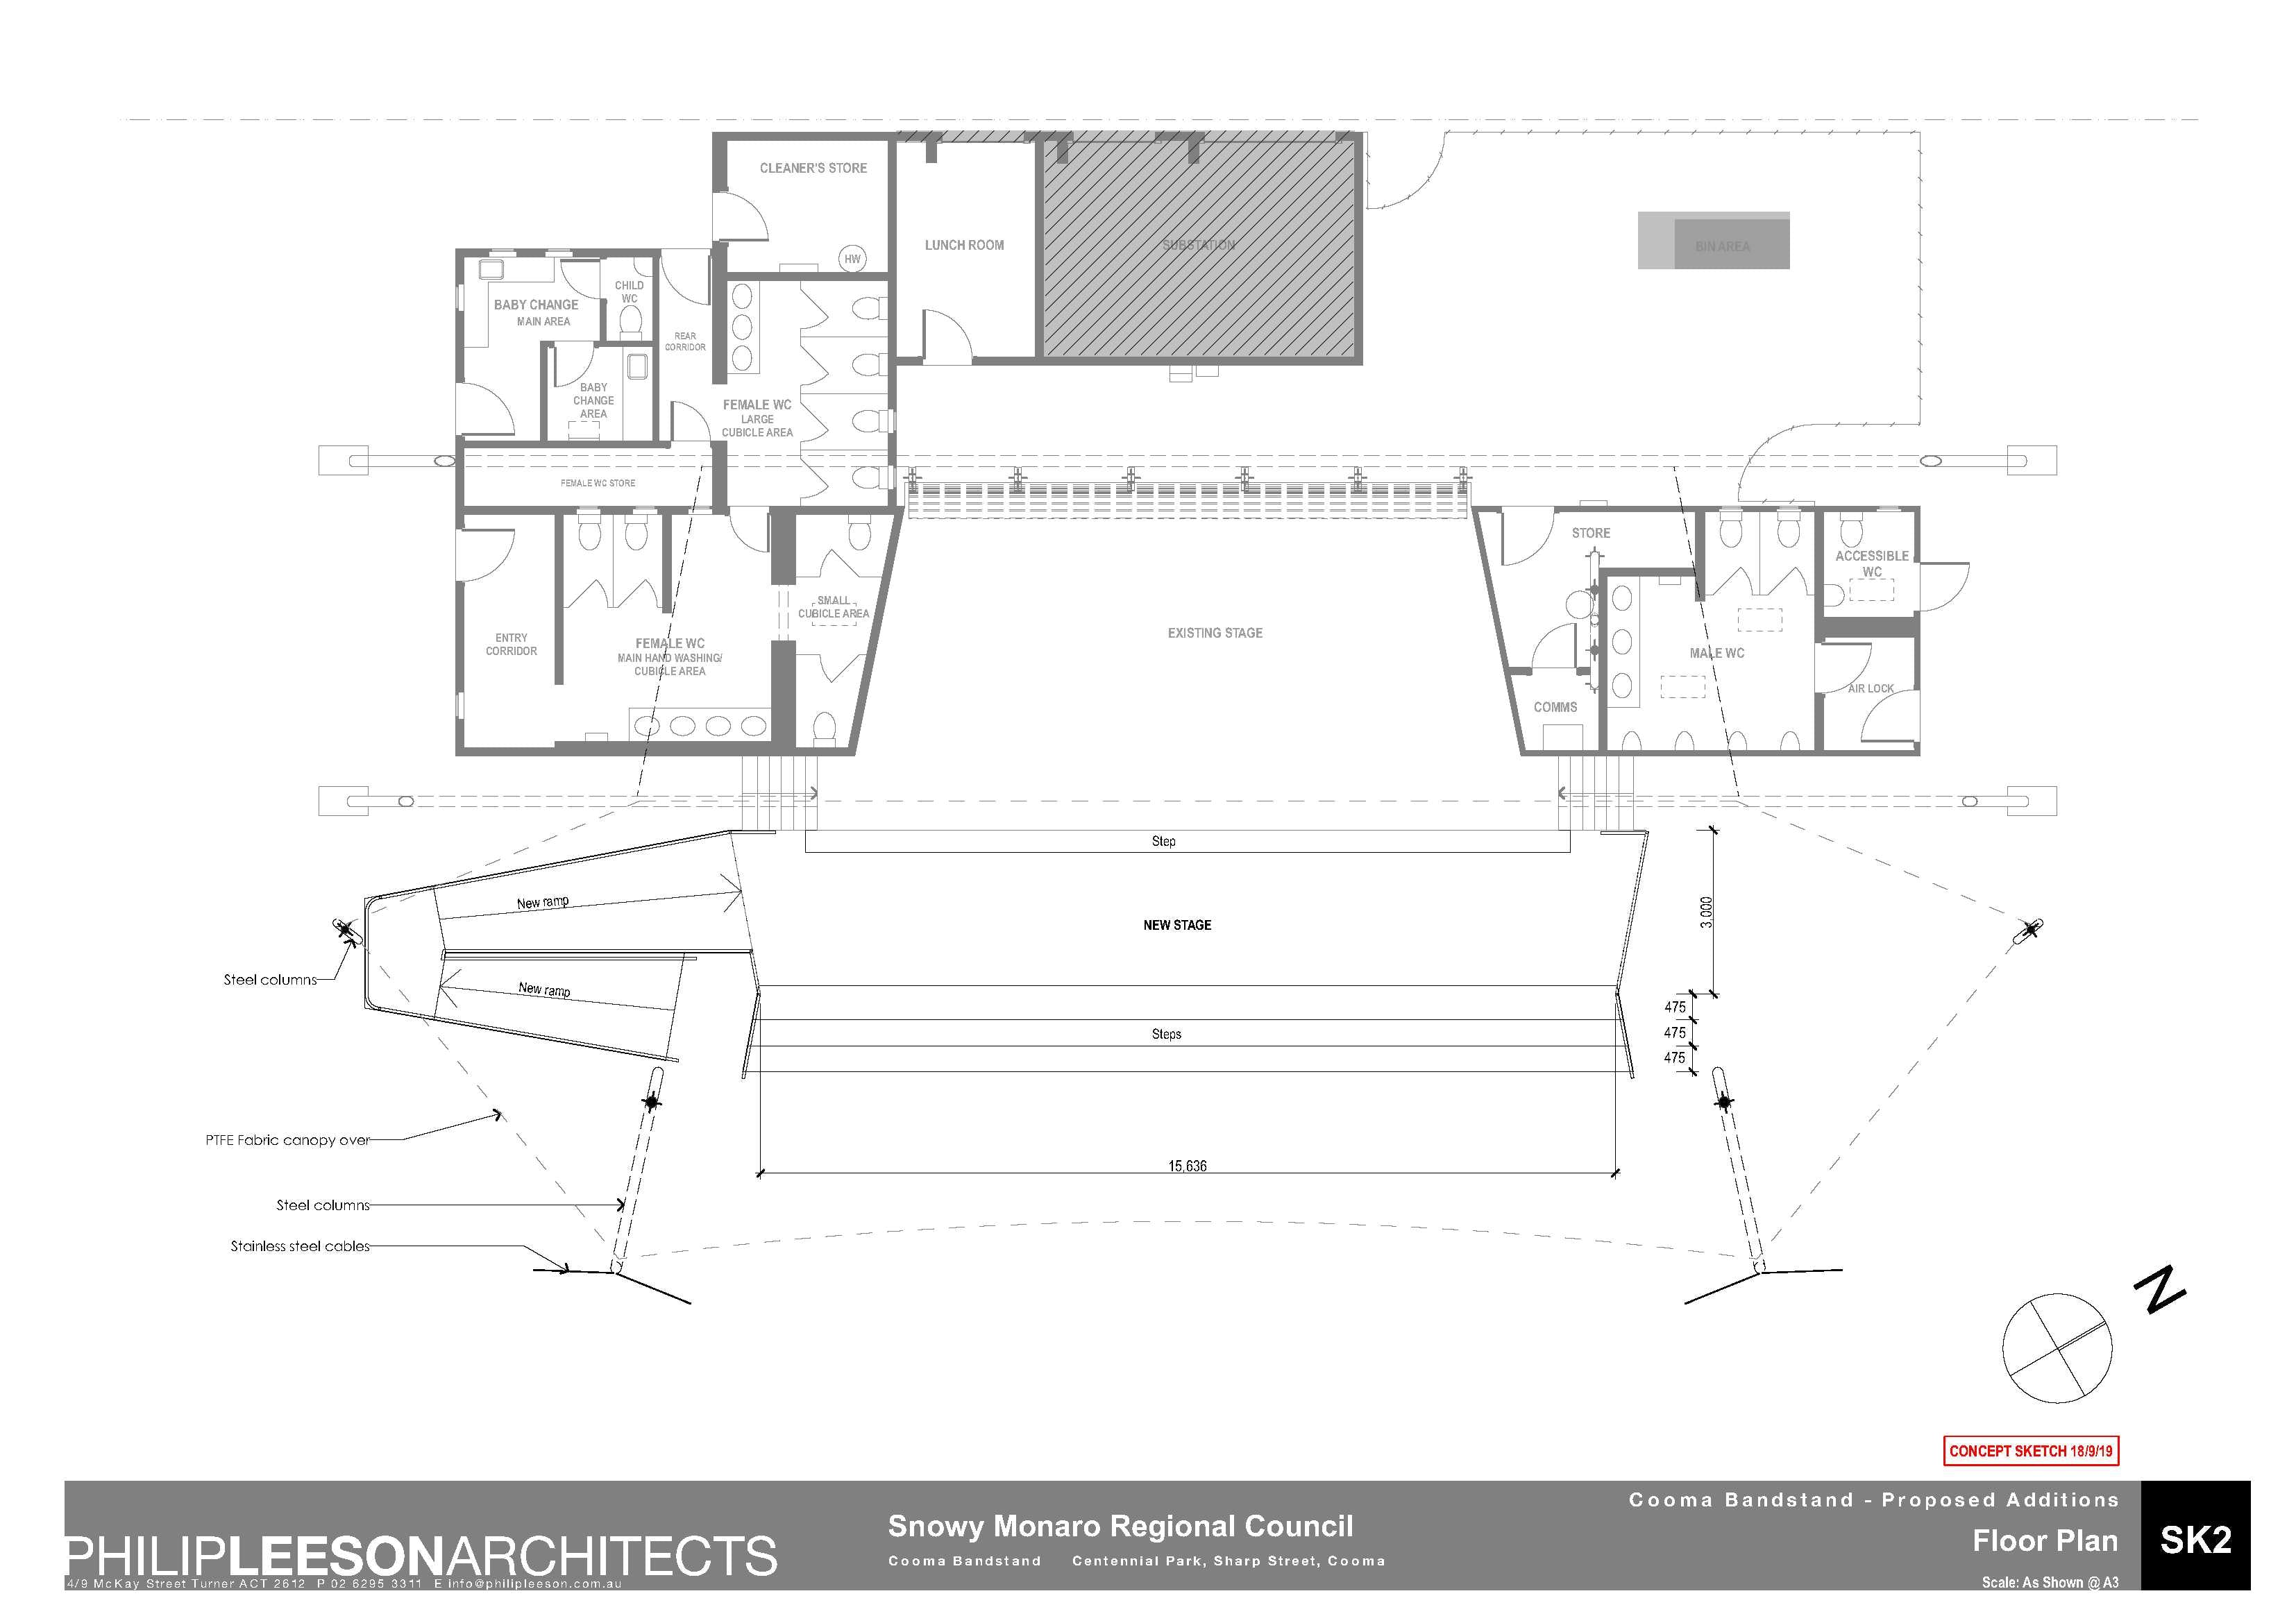 Cooma Bandstand - Proposed Additions_190918 Concept Sketch_2